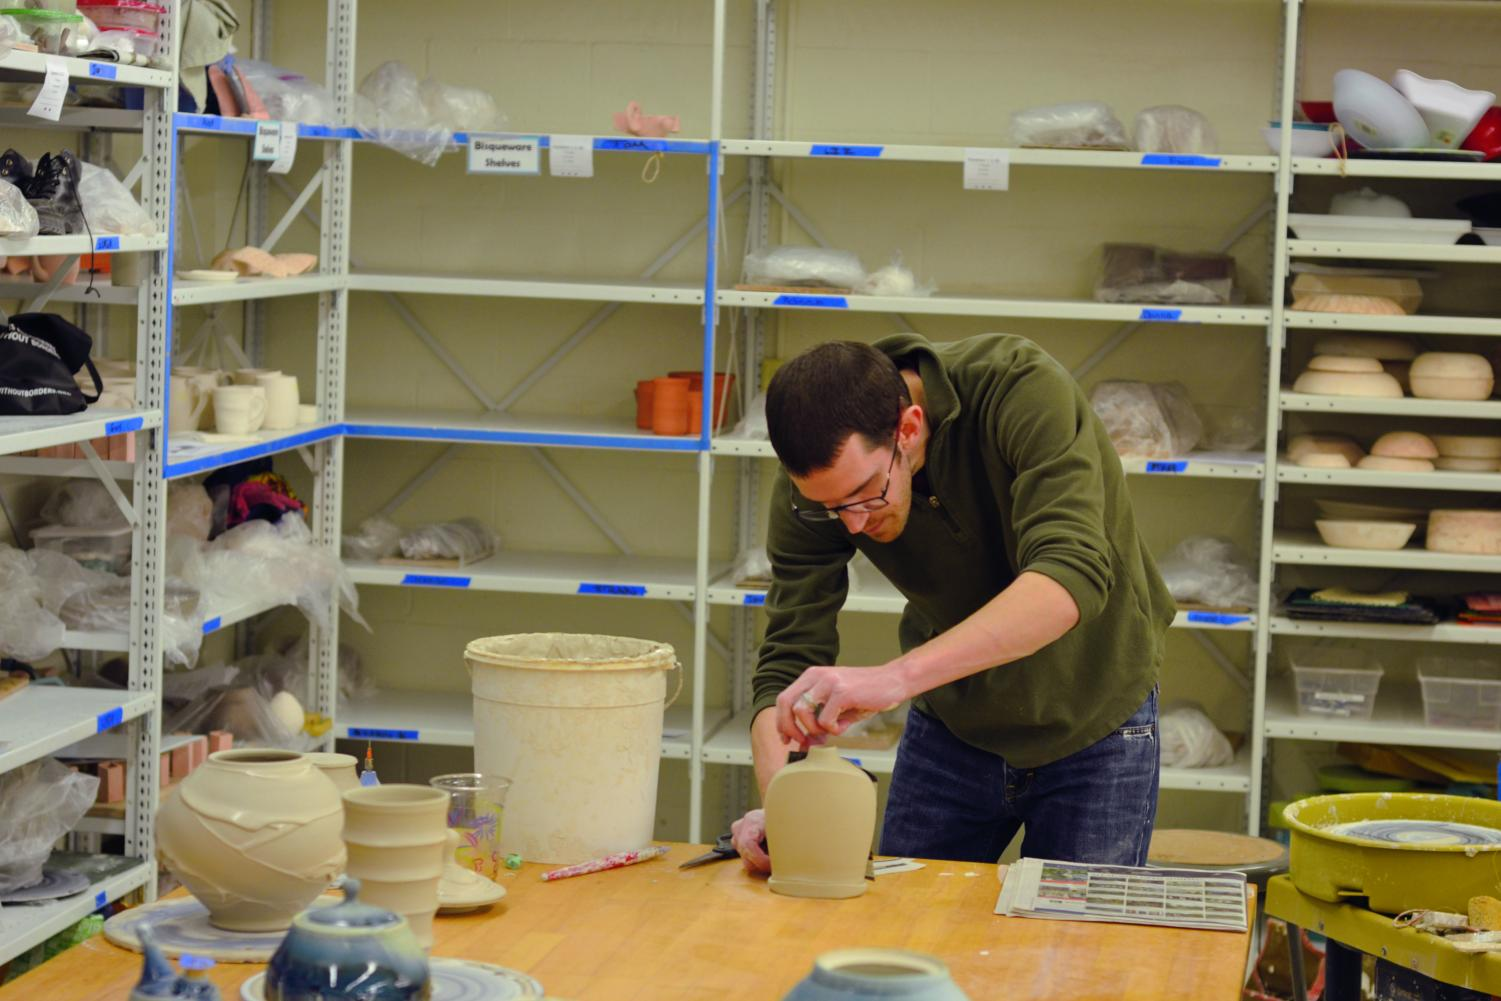 Chris Lively, a ceramics artist, works on his pottery.